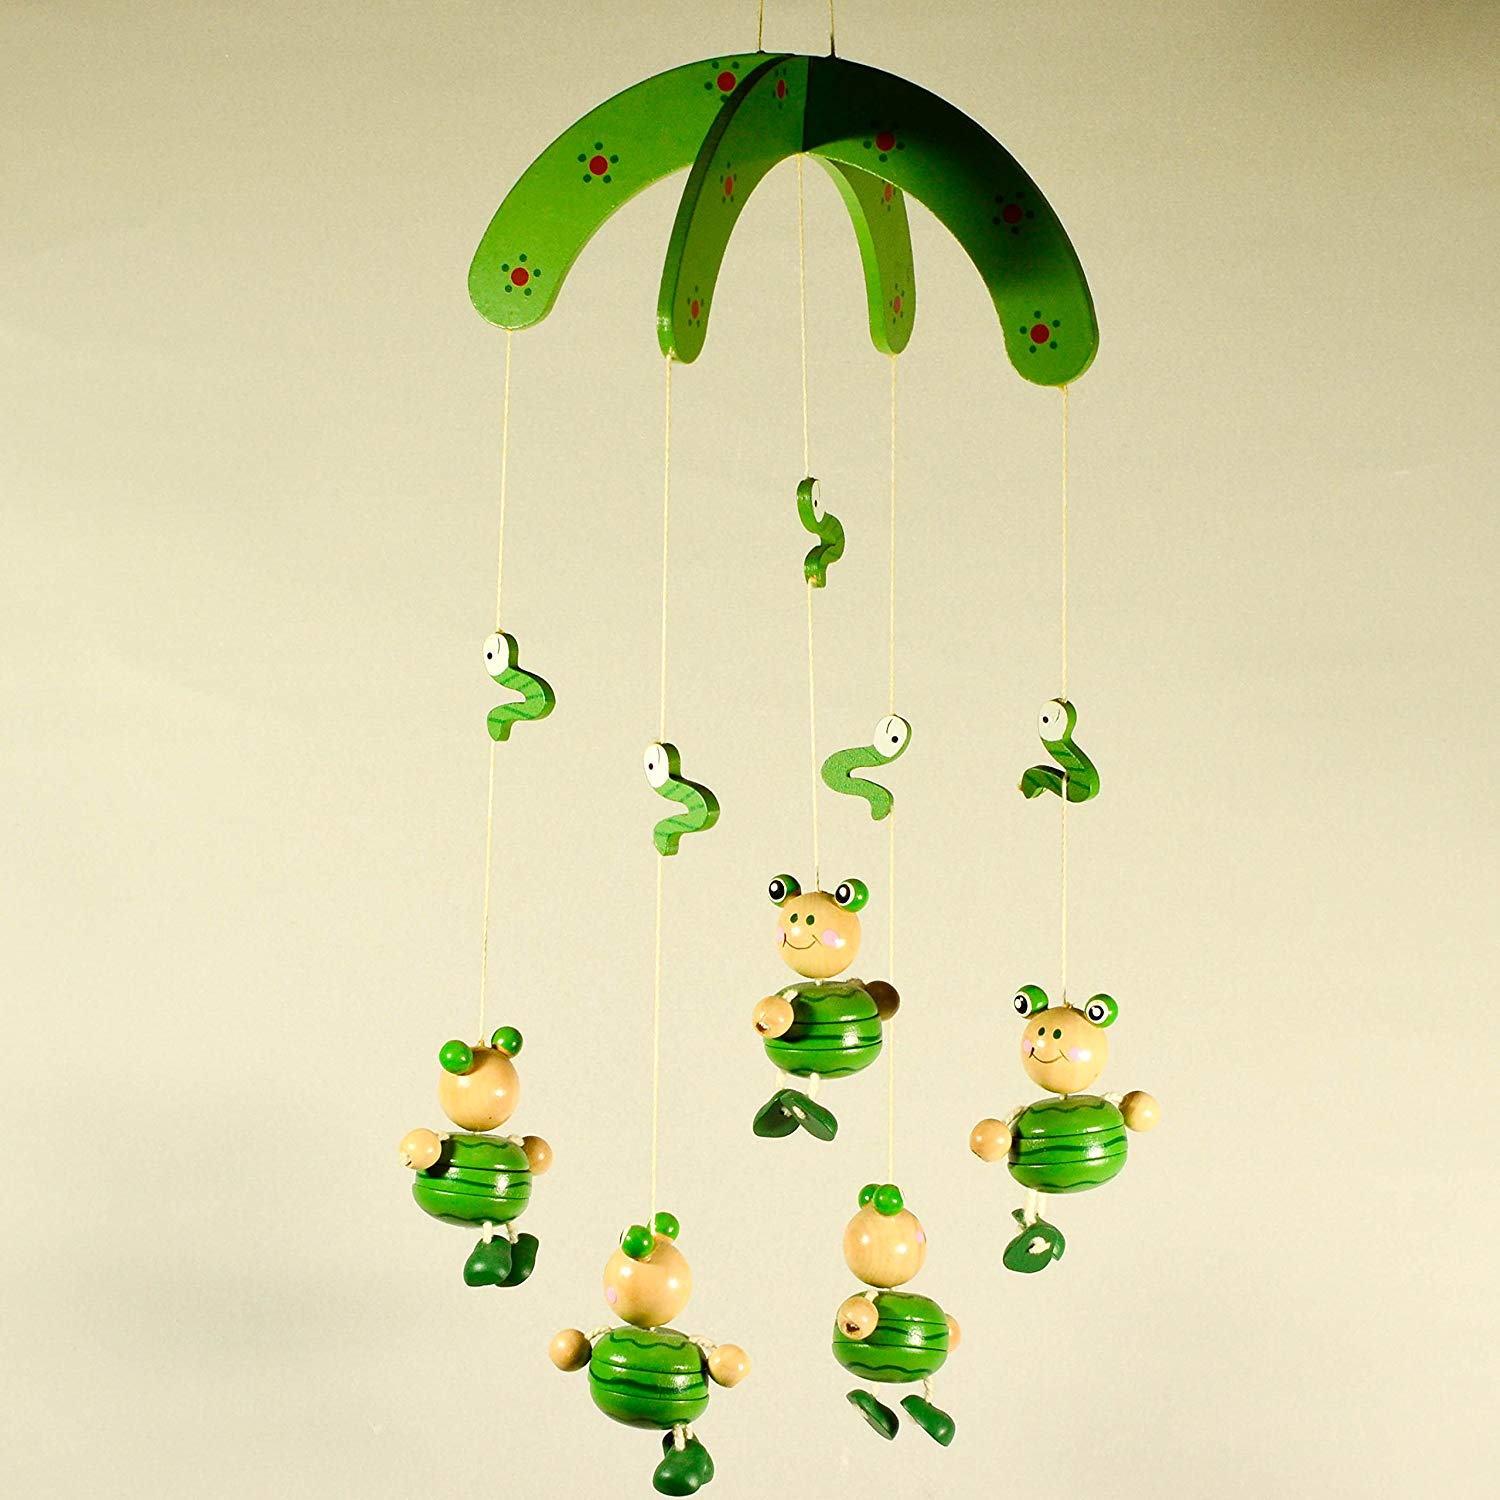 Wooden Hanging Mobile with Frogs - Nursery Decor - Animal Mobile Ornament - Baby Room Decor